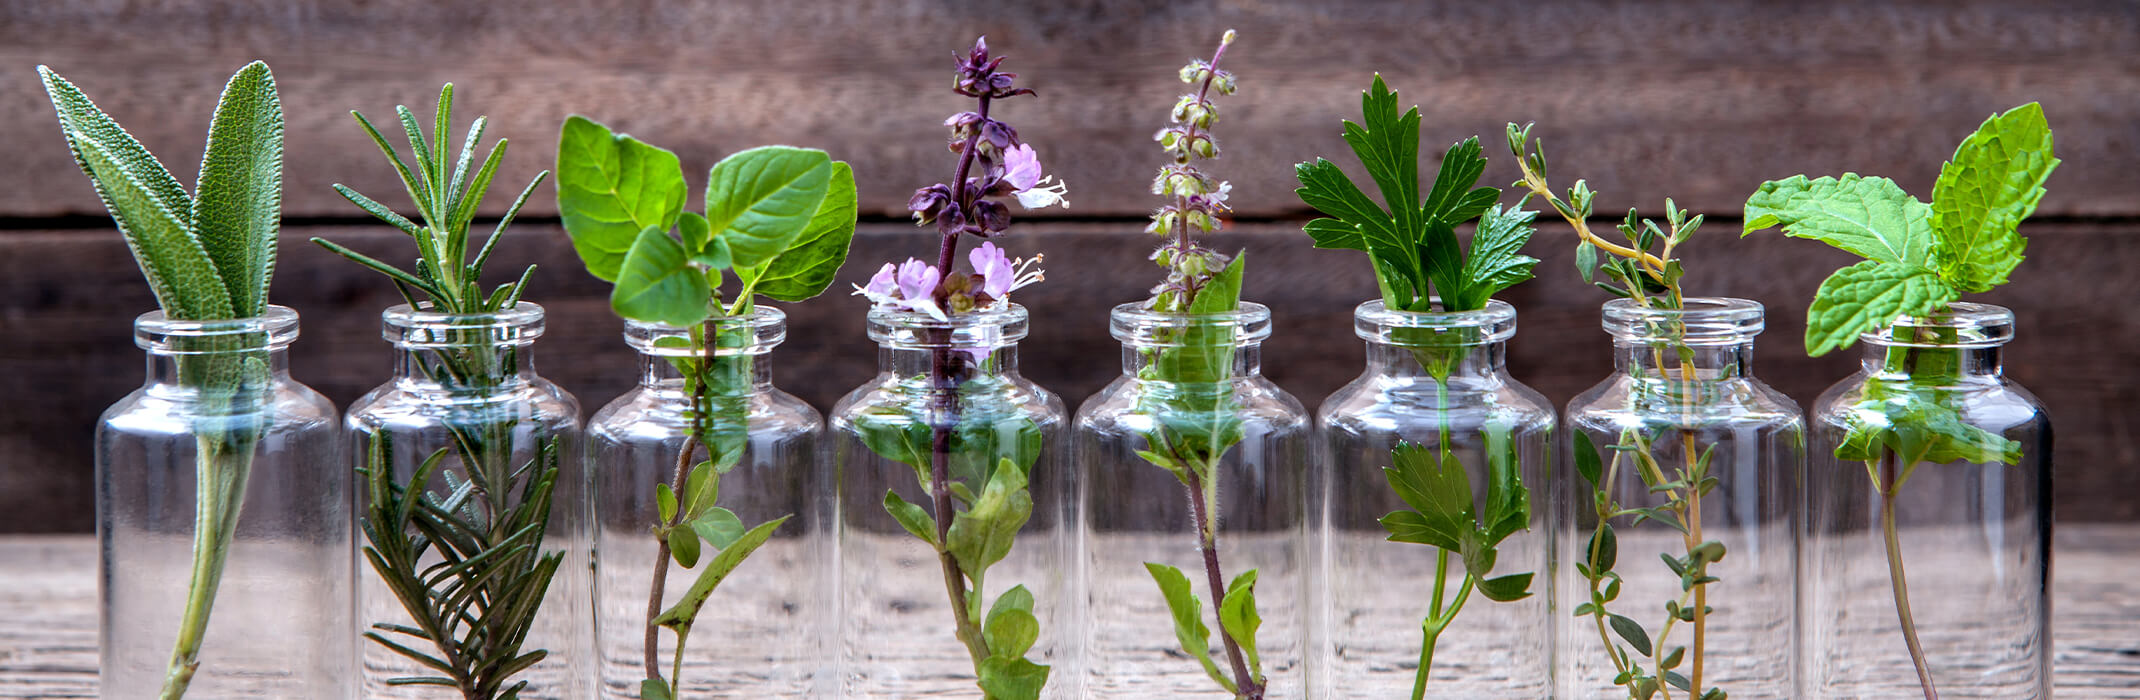 A variety of herbs - each in a clear glass bottle on a wooden table